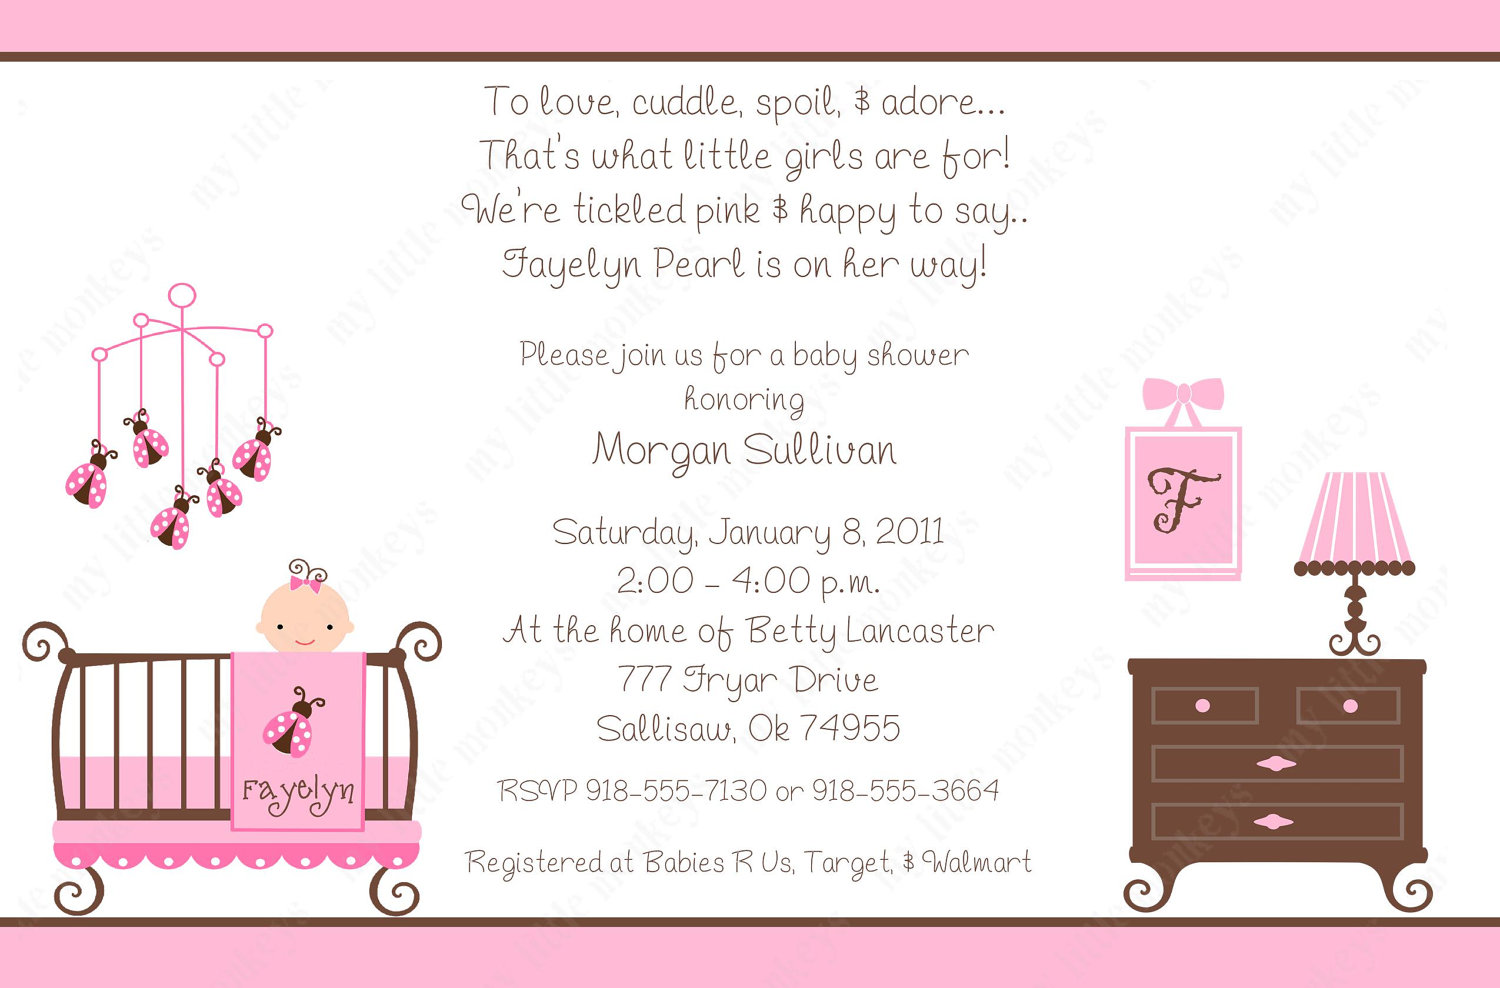 Full Size of Baby Shower:baby Boy Shower Ideas Free Printable Baby Shower Games Free Baby Shower Ideas Unique Baby Shower Decorations Baby Girl Themes For Baby Shower Baby Shower Themes Baby Shower Ideas Baby Shower Decorations Printable Baby Shower Invitations For Girl